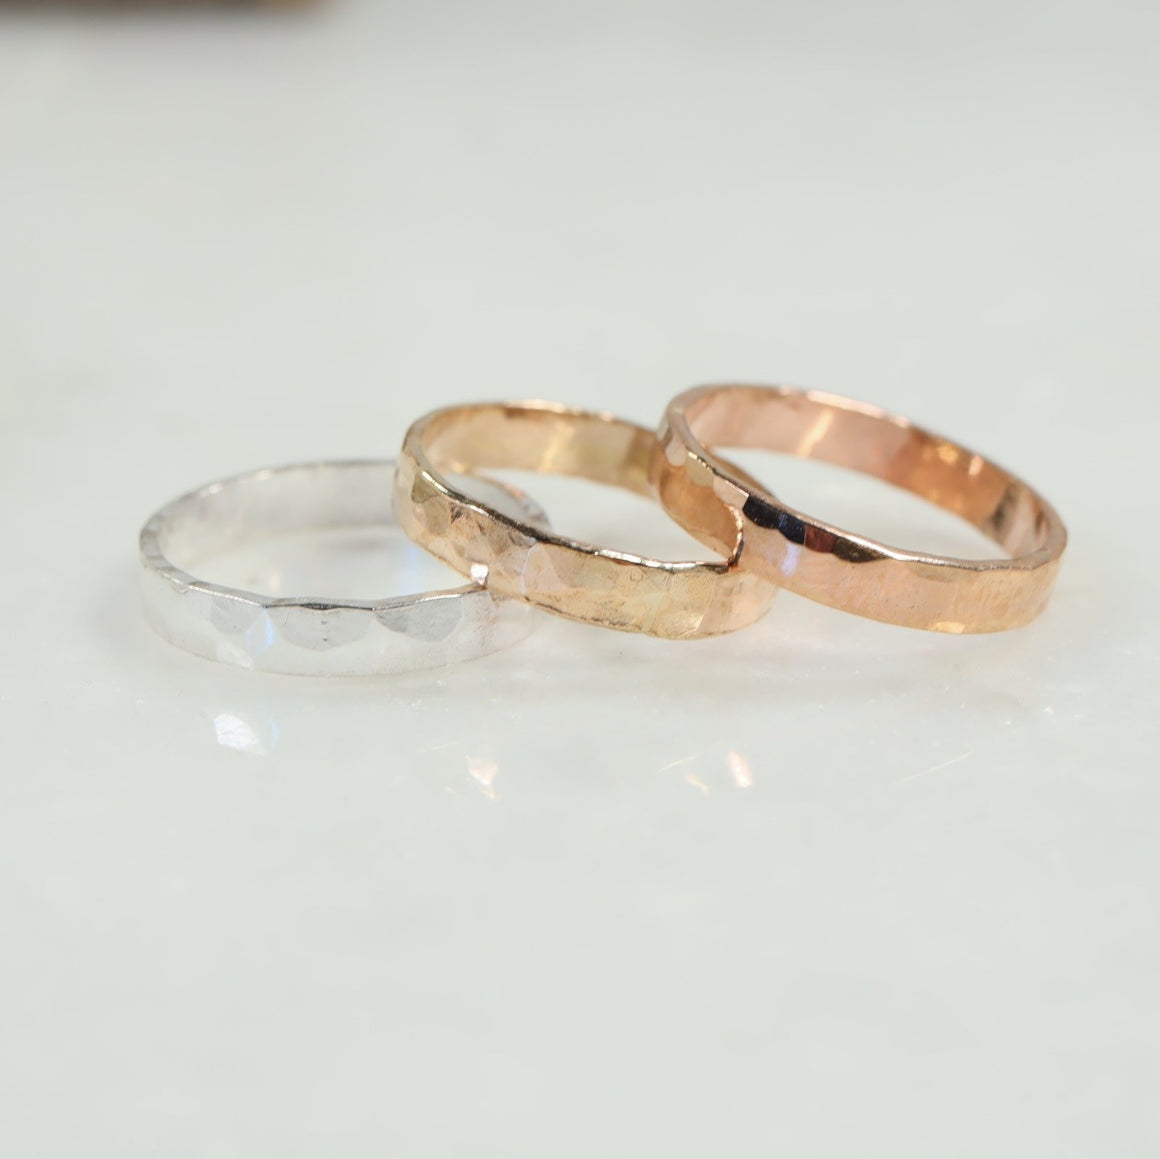 3mm hammered stamping ring silver, gold, pink gold